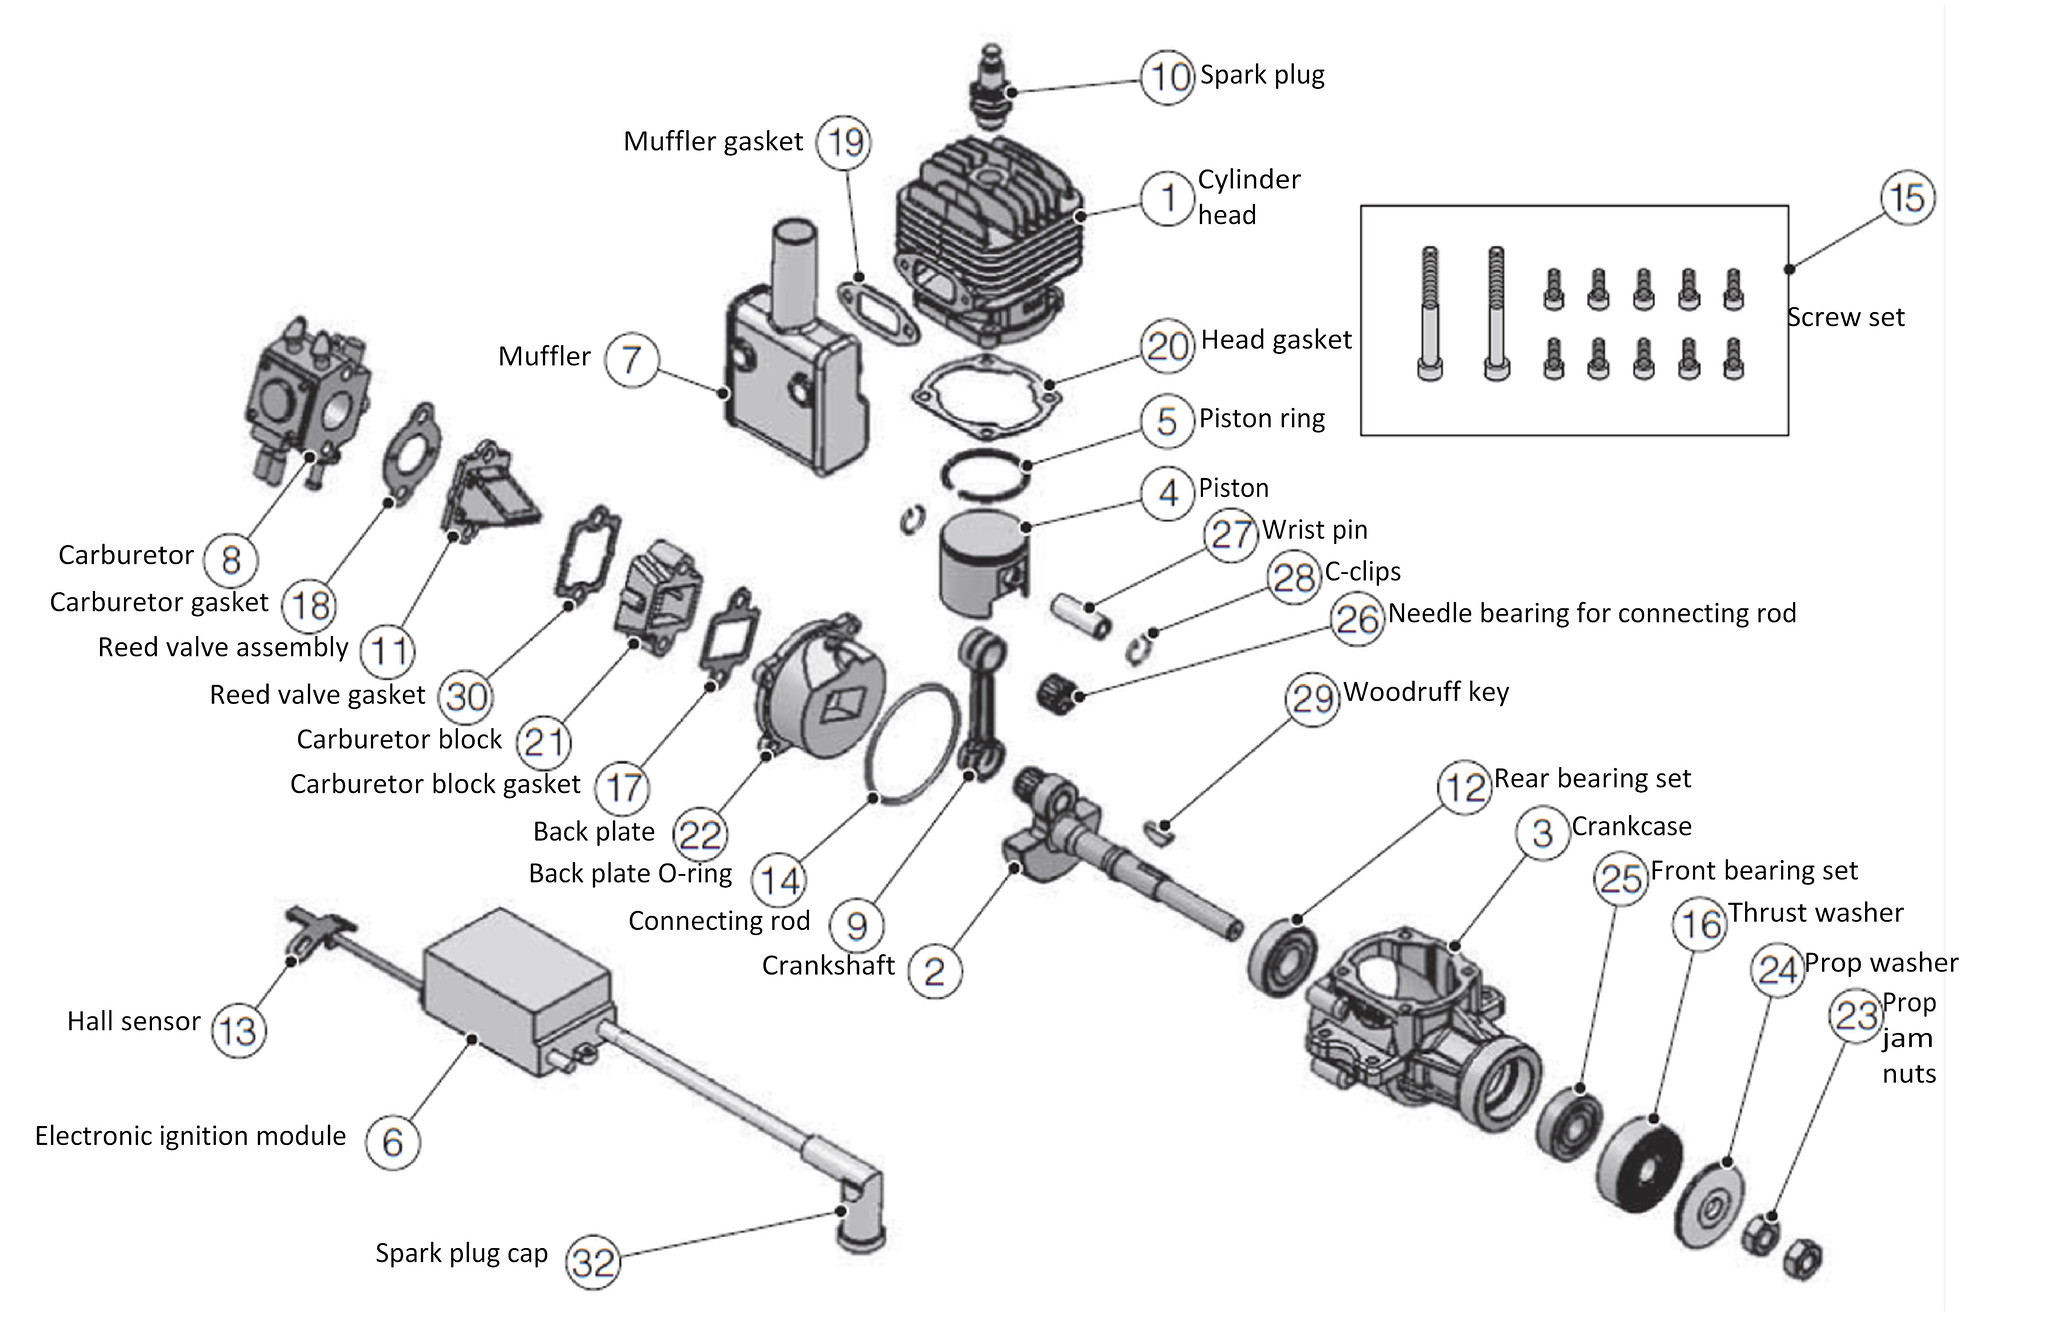 dle 20 exploded diagram - labeled